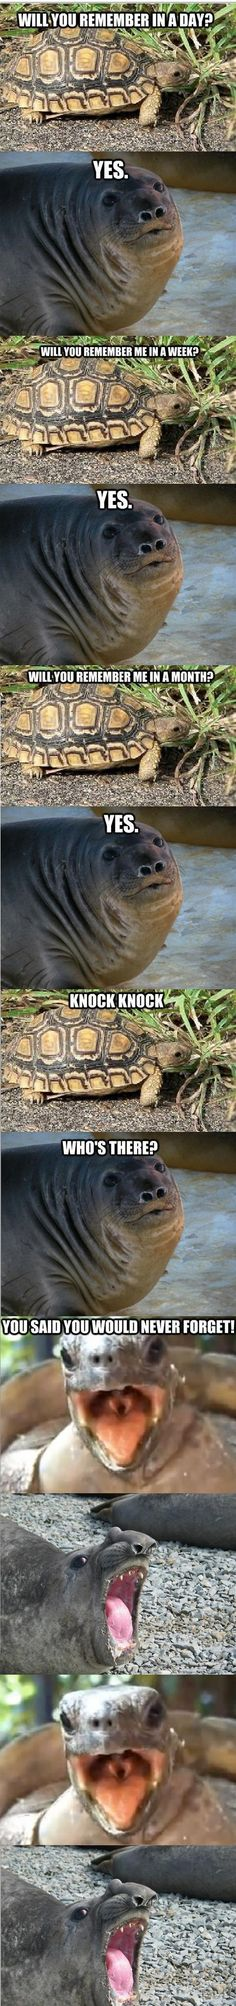 knockknock, turtl, remember this, animal humor, funni